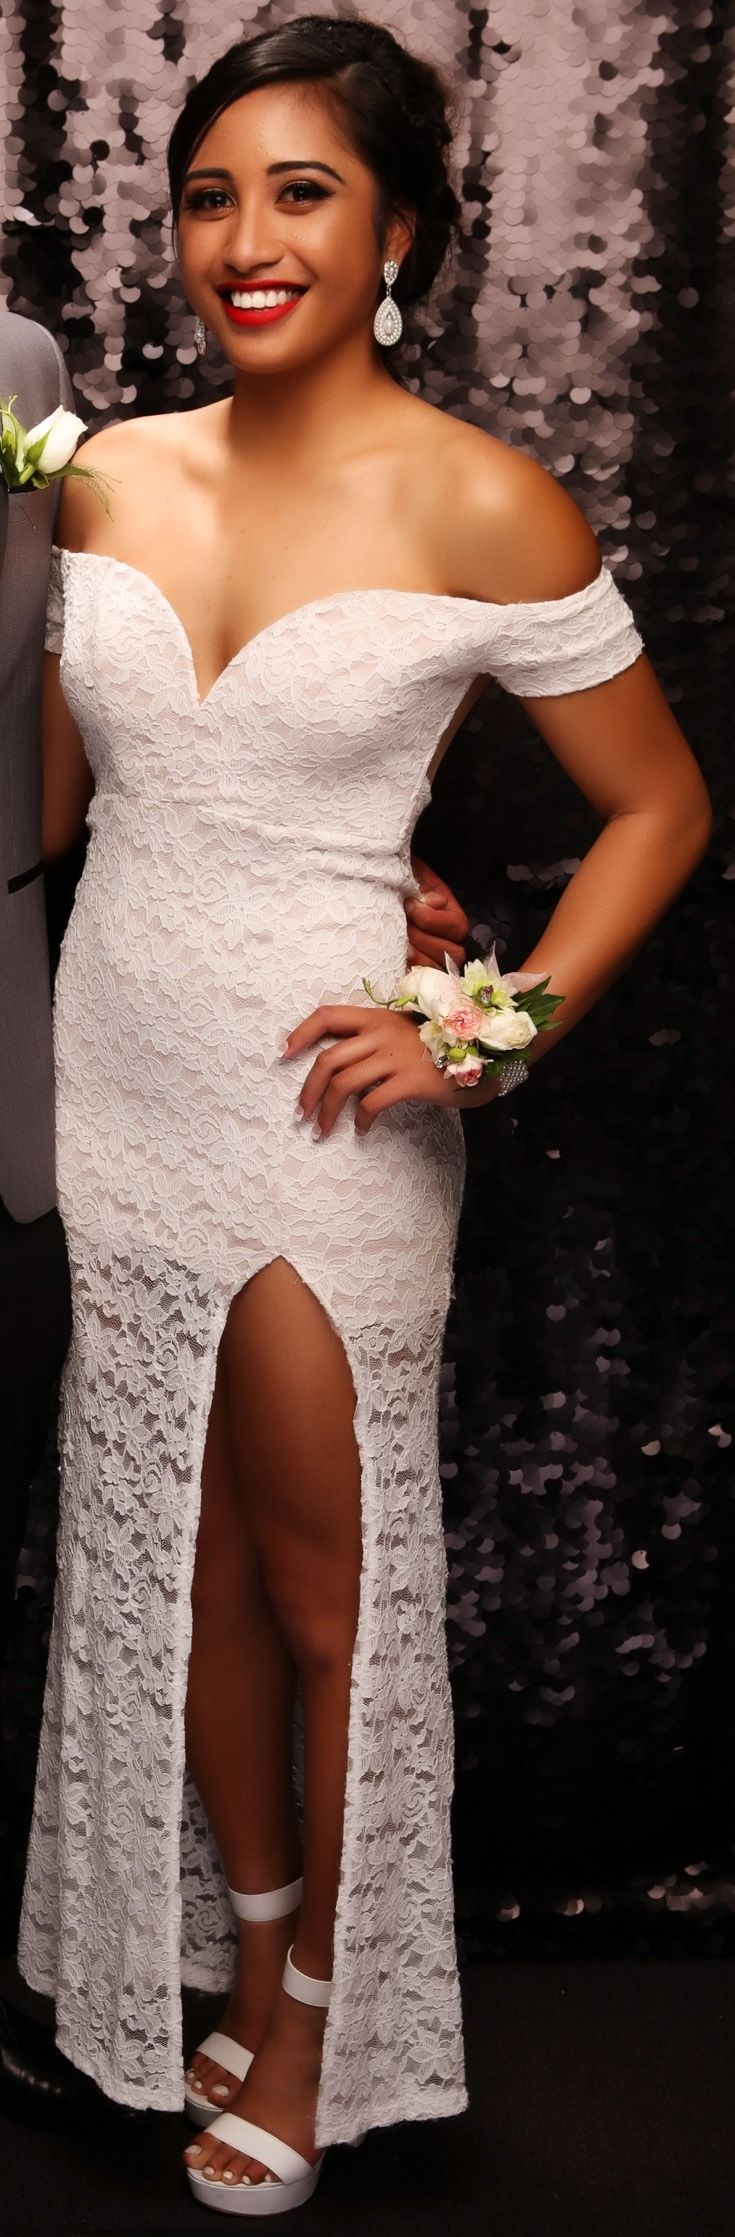 St Peter's Ball 2015. Love this lace look! www.whitedoor.co.nz